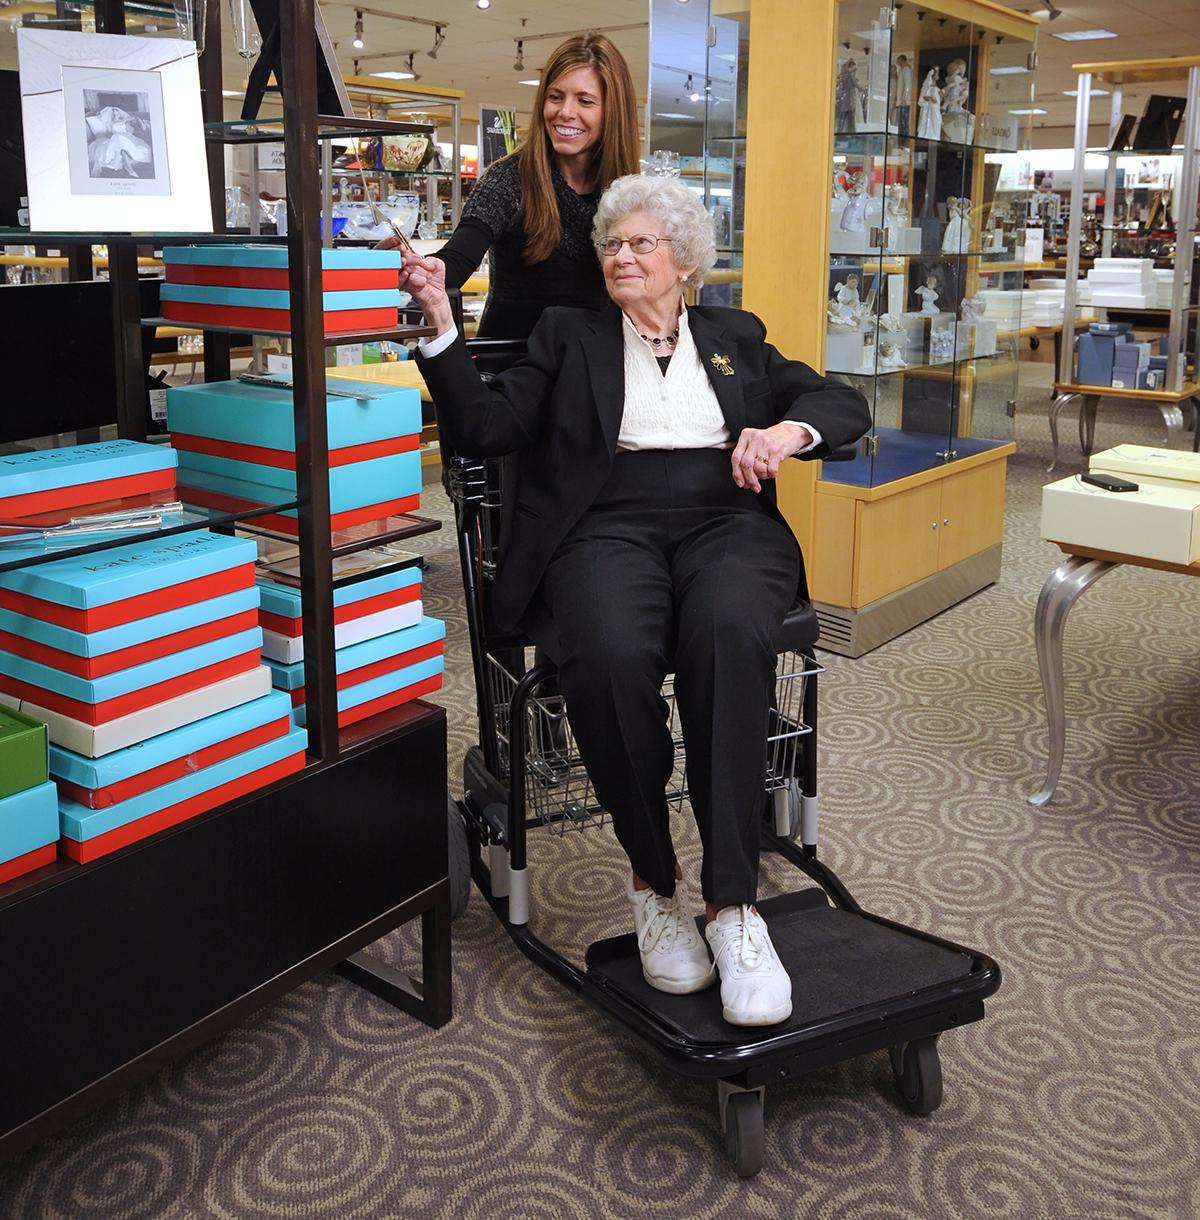 Amigo Smartchair is a wheelchair alternative for retail stores and malls